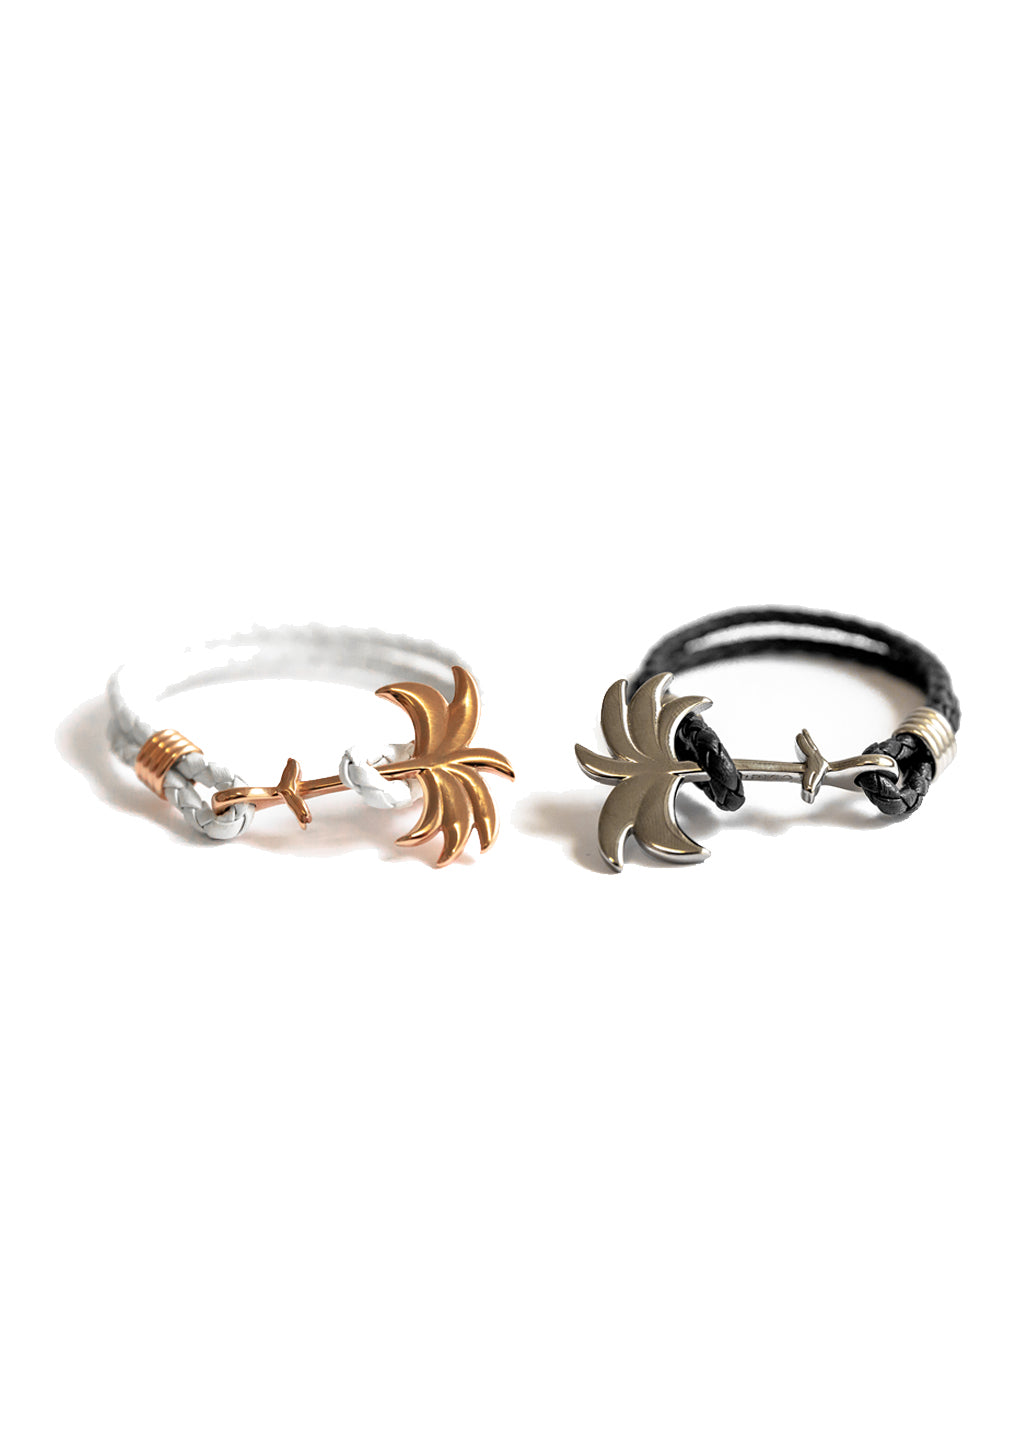 The Palm Band anchor bracelet - Couples pack. Perfect for you and your partner.